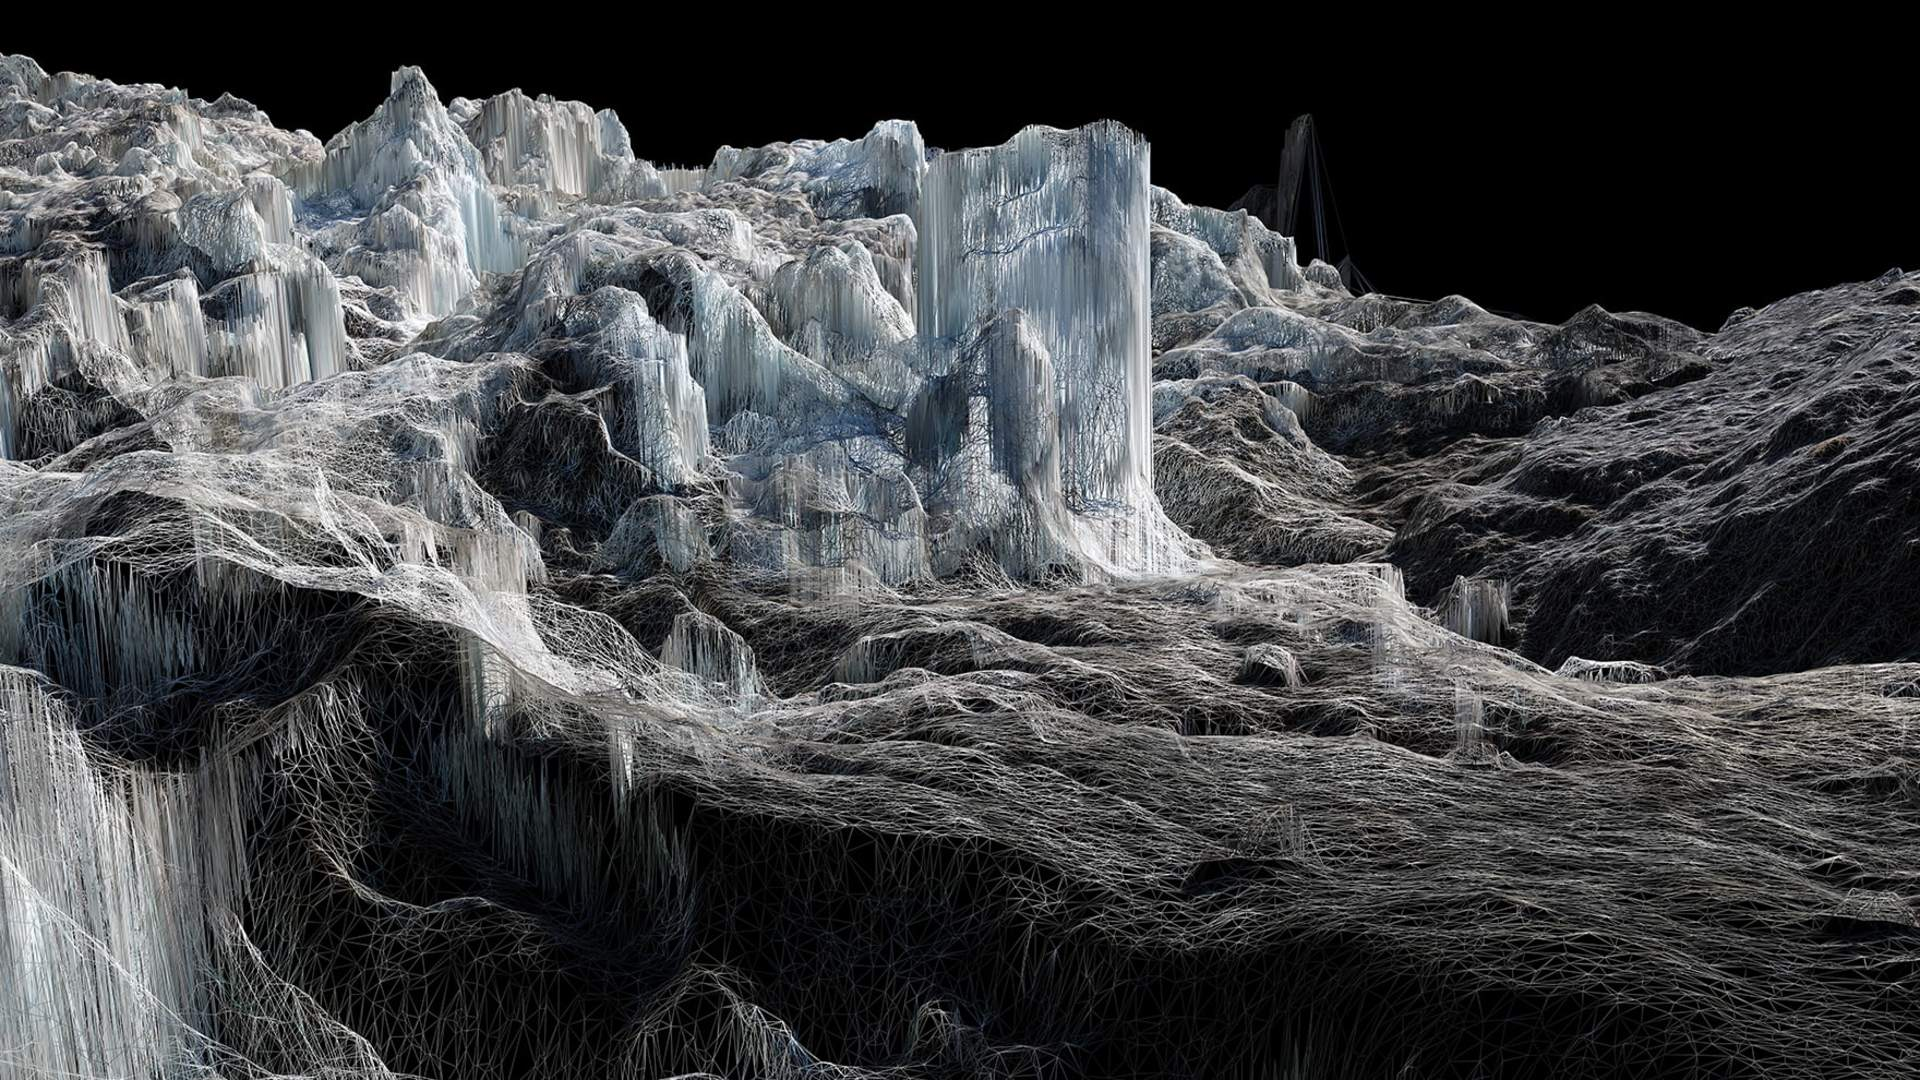 An art piece from Dan Holdsworth commissioned by Rolls-Royce to explore and investigate both real and virtual representations of a frozen landscape.